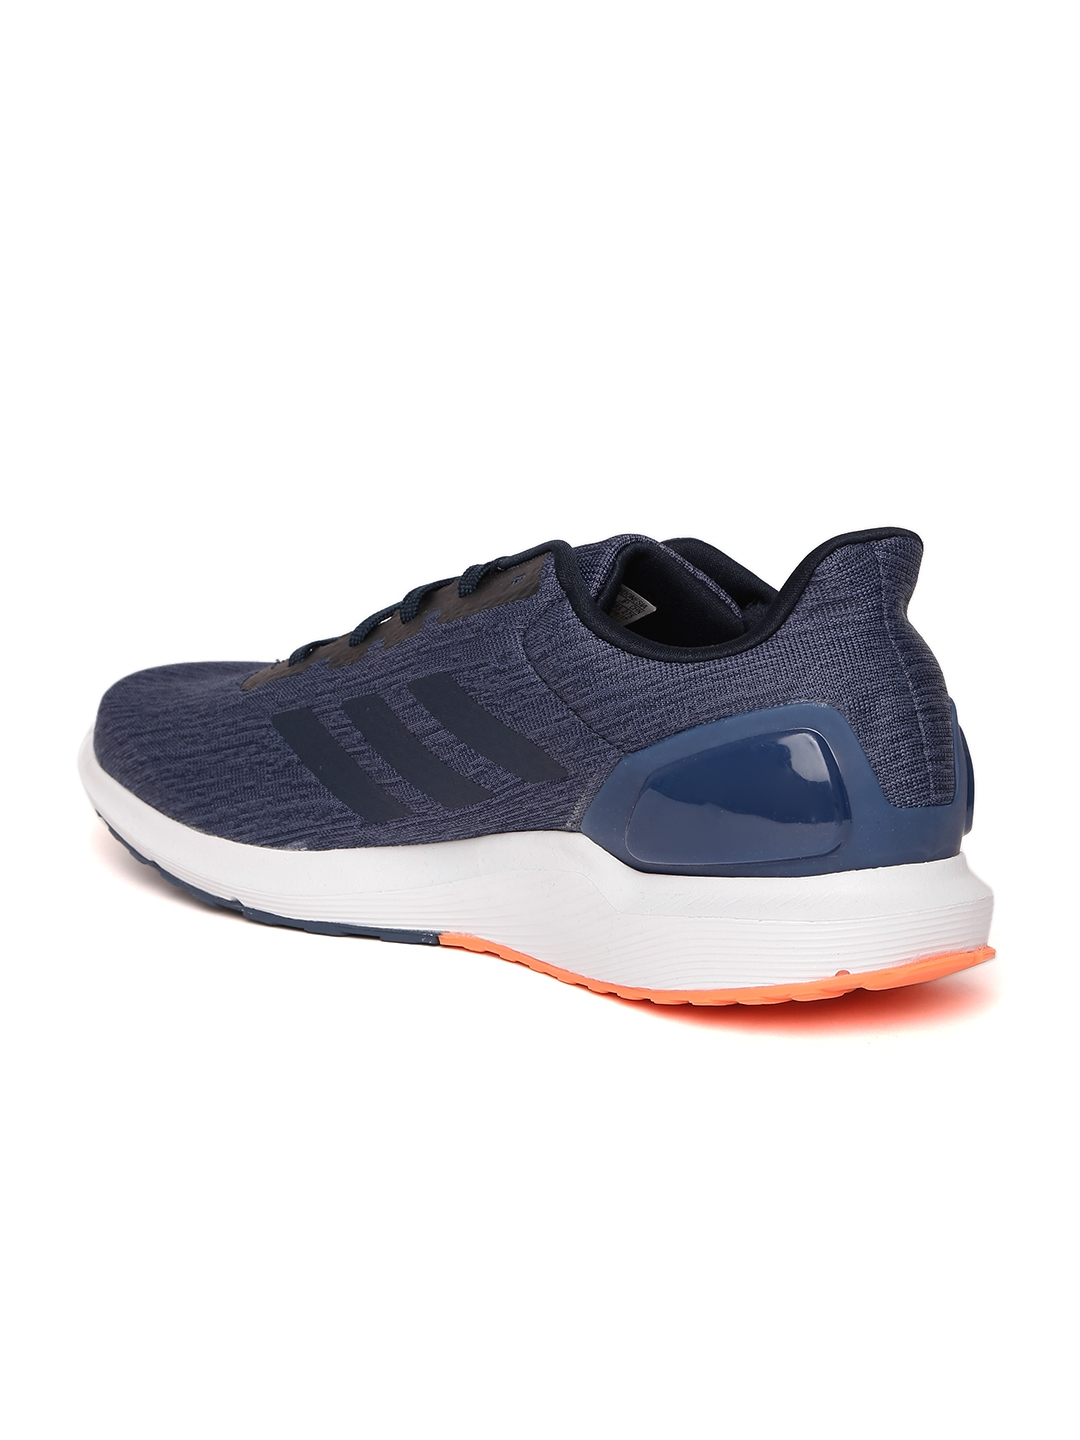 Buy Adidas Men Blue COSMIC 2 Running Shoes - Sports Shoes for Men ... cdce7d4c5